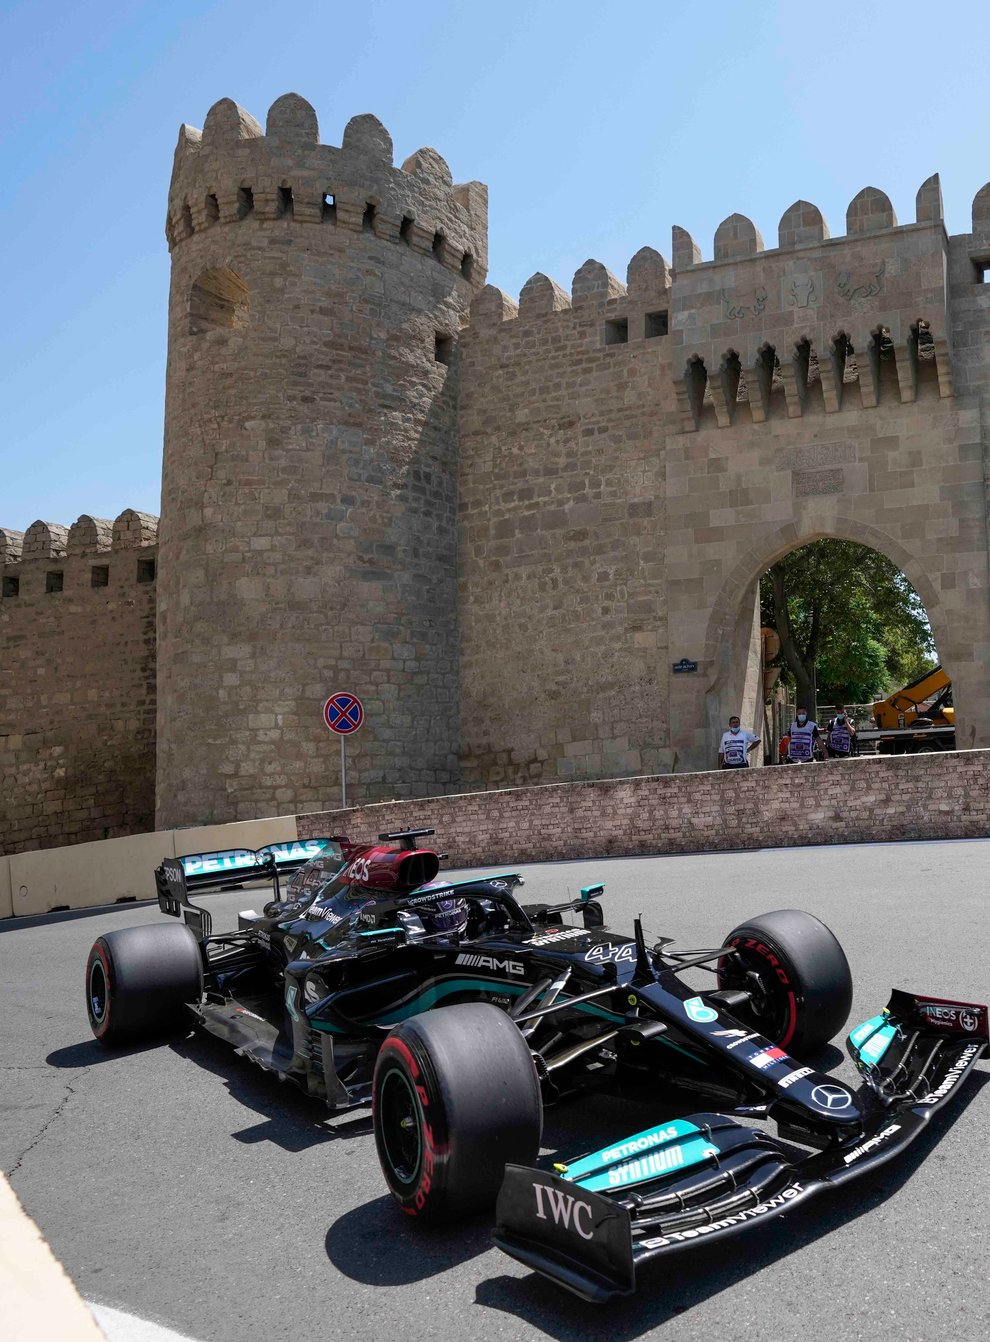 Lewis Hamilton finished only 11th in Azerbaijan on Friday